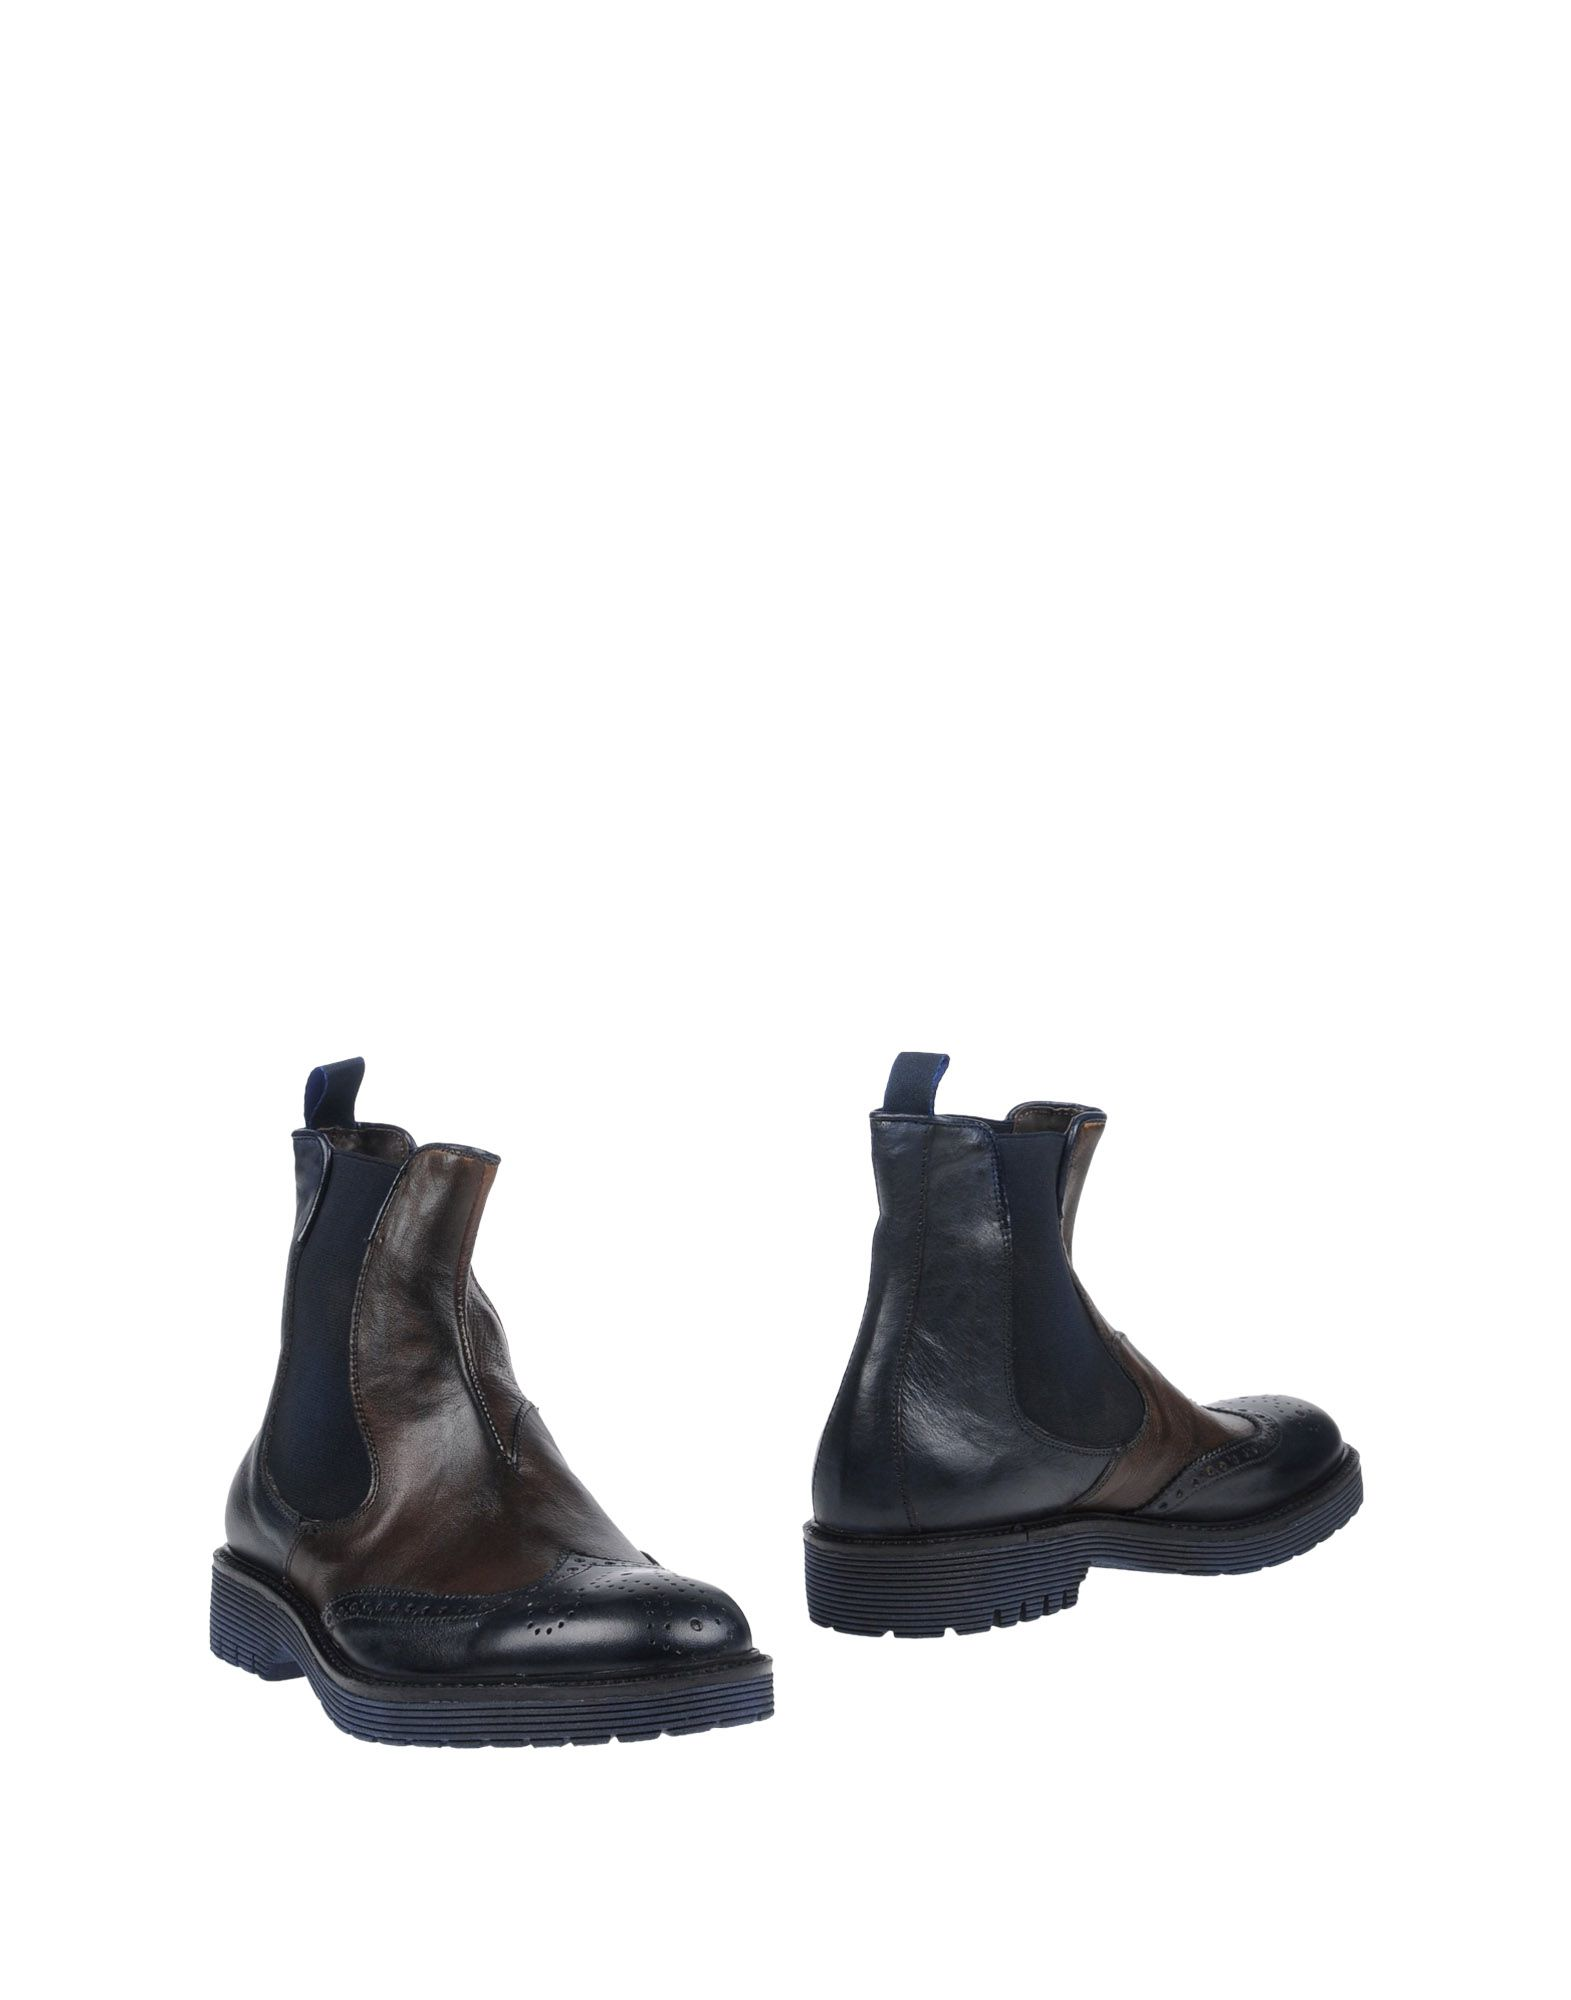 Herman & Sons & Boots - Men Herman & Sons Sons Boots online on  Australia - 11453865AW ce2ded